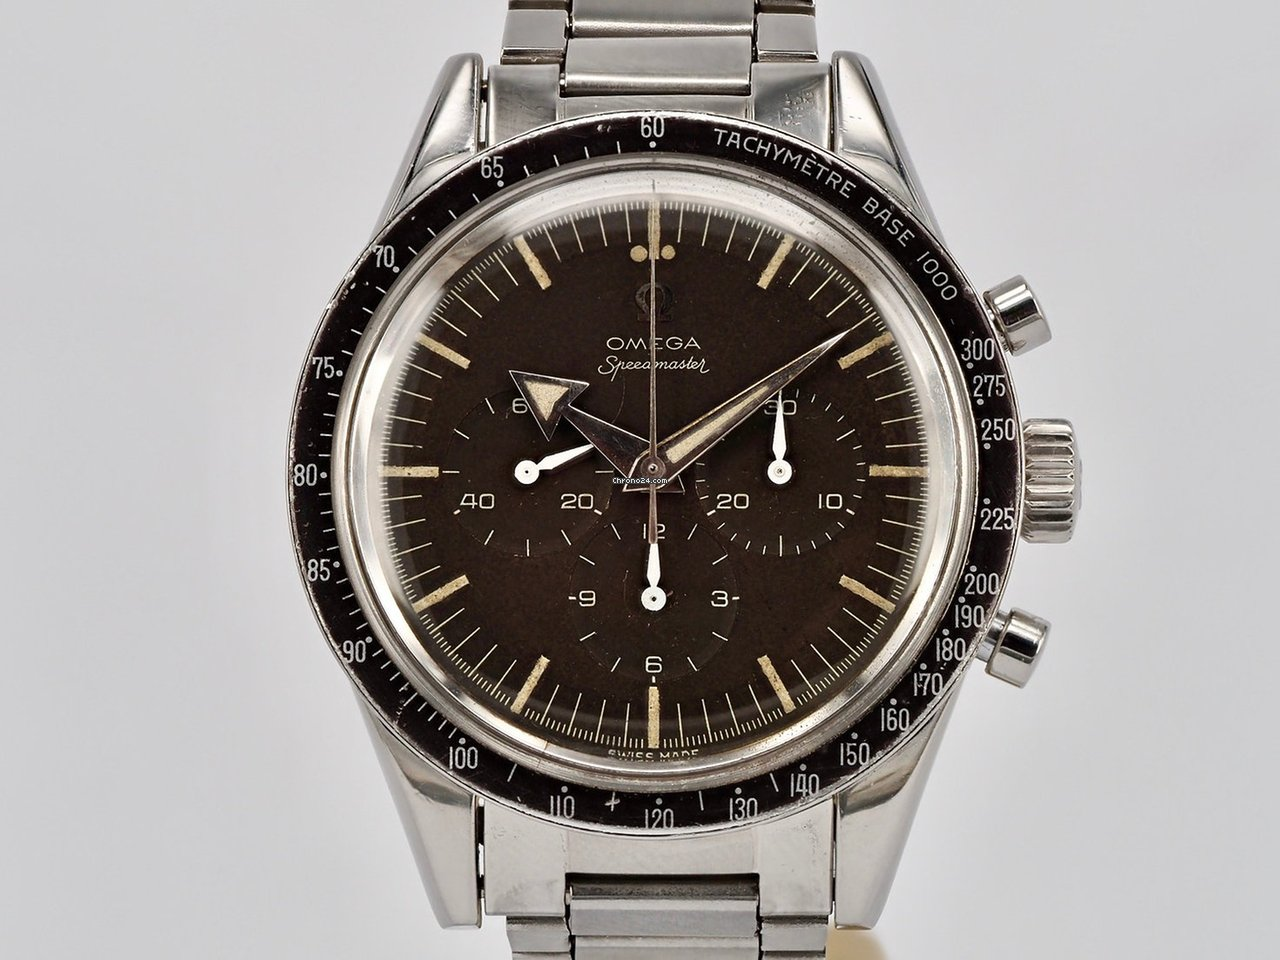 Omega Speedmaster Professional Moonwatch ck2915 1959 pre-owned